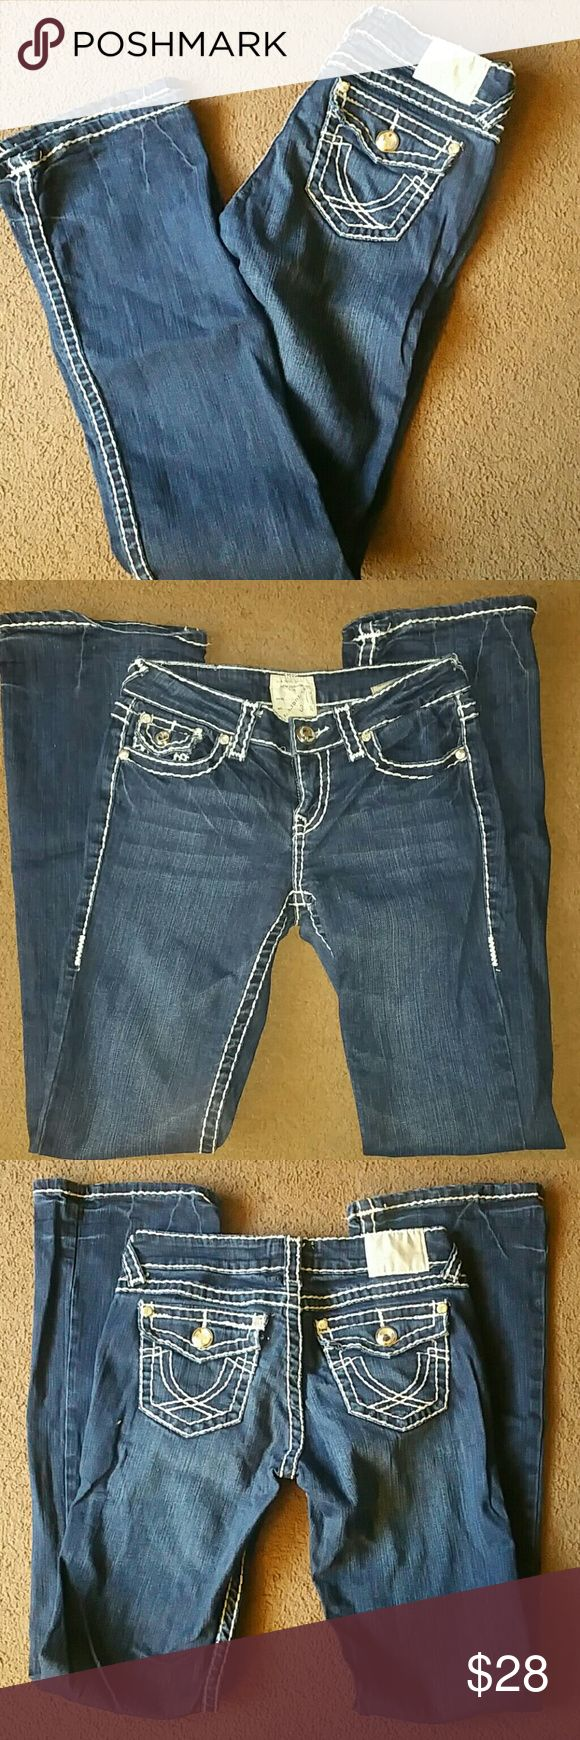 LA Idol USA size 3 (28/34) boot cut bling jeans LA Idol USA women's size 28, inseam 34. Medium wash blue denim. Boot cut jeans. Bling back button flap pockets. Stretchy material, 97% cotton and 3% elastane. Great used condition. 33 inch inseam LA Idol Jeans Boot Cut